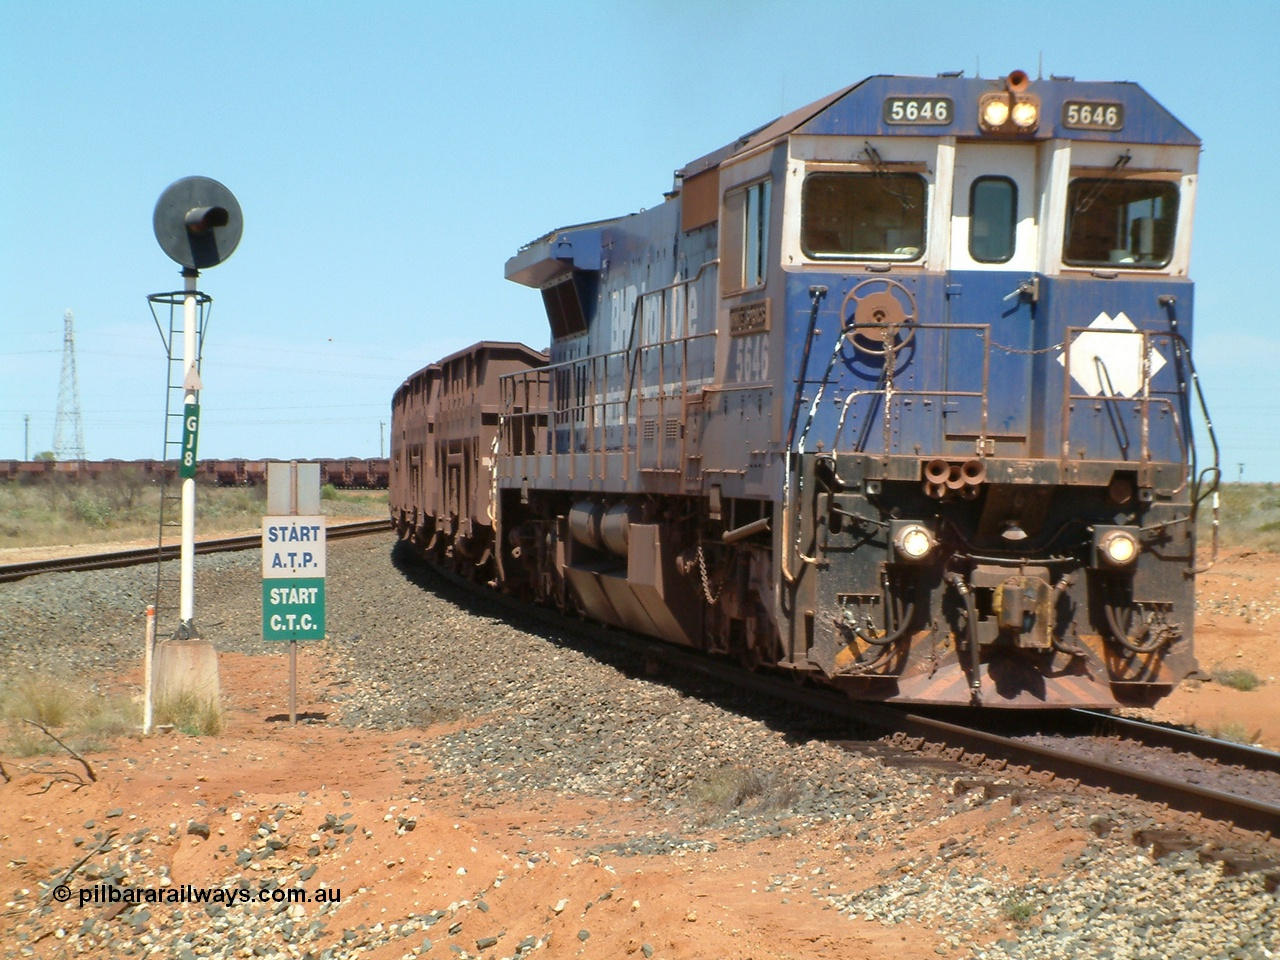 Pilbara Railways Blog